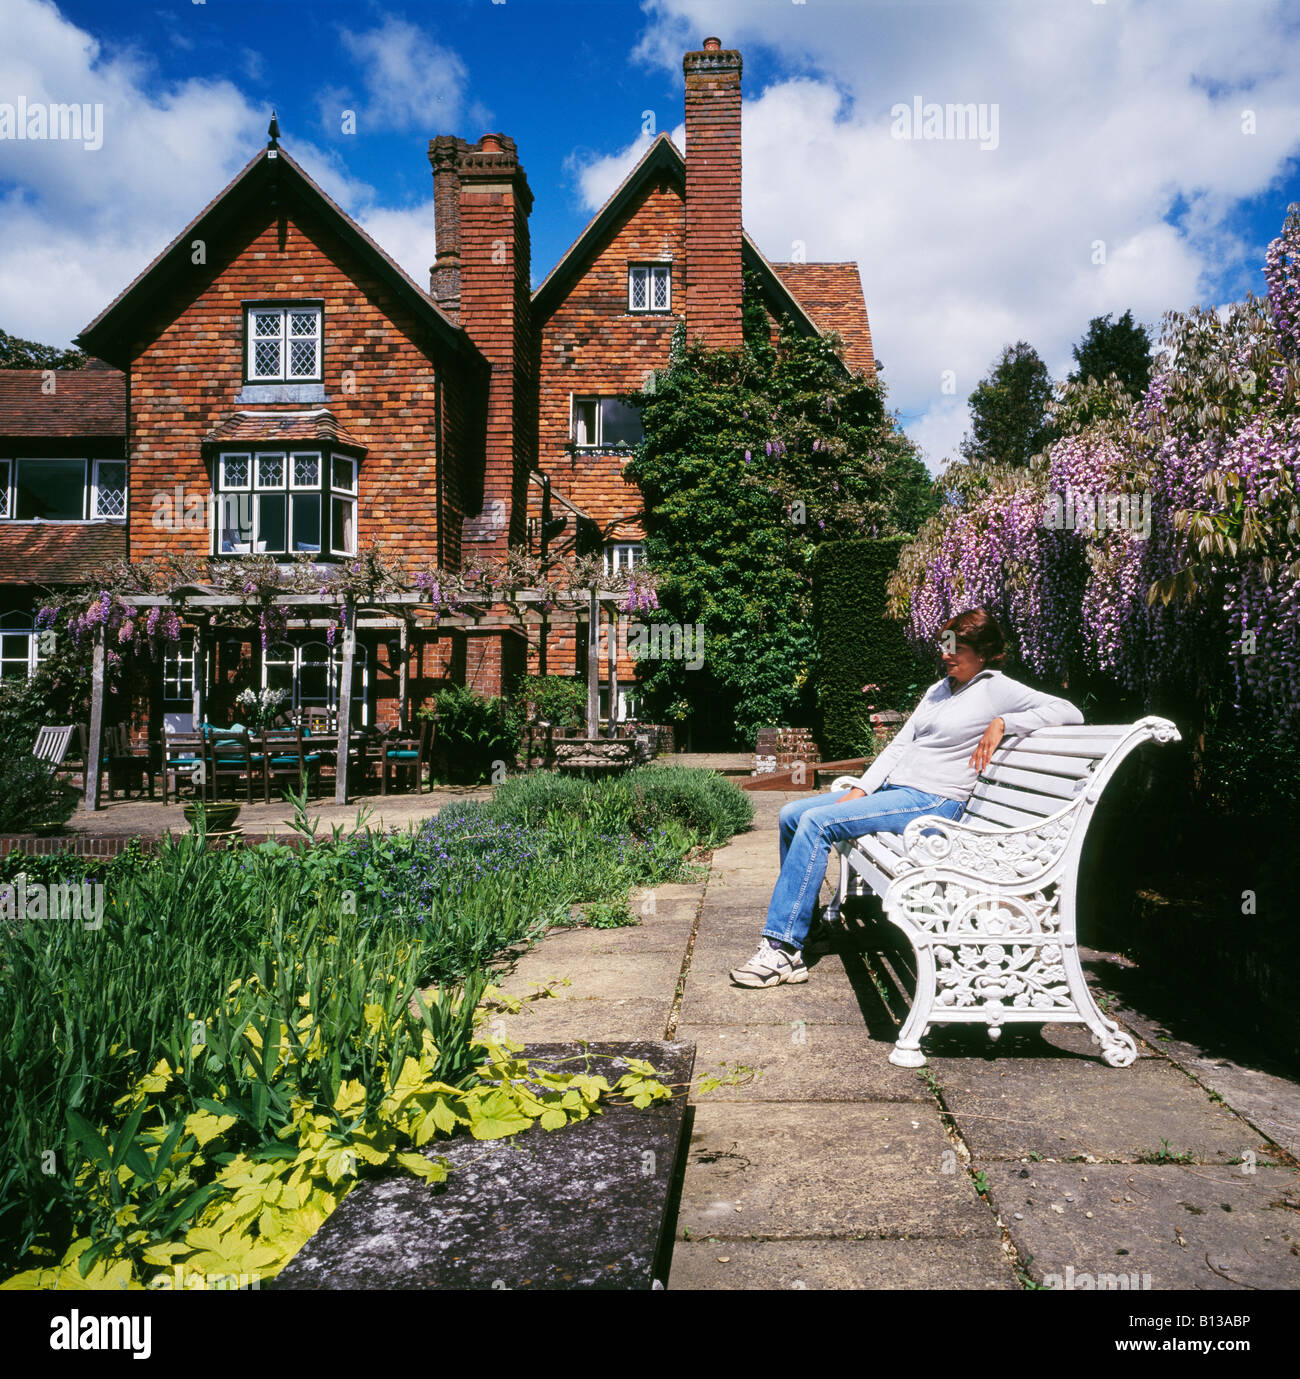 Woman relaxing in a garden Marle Place Brenchley Nr Tonbridge Kent England UK. - Stock Image